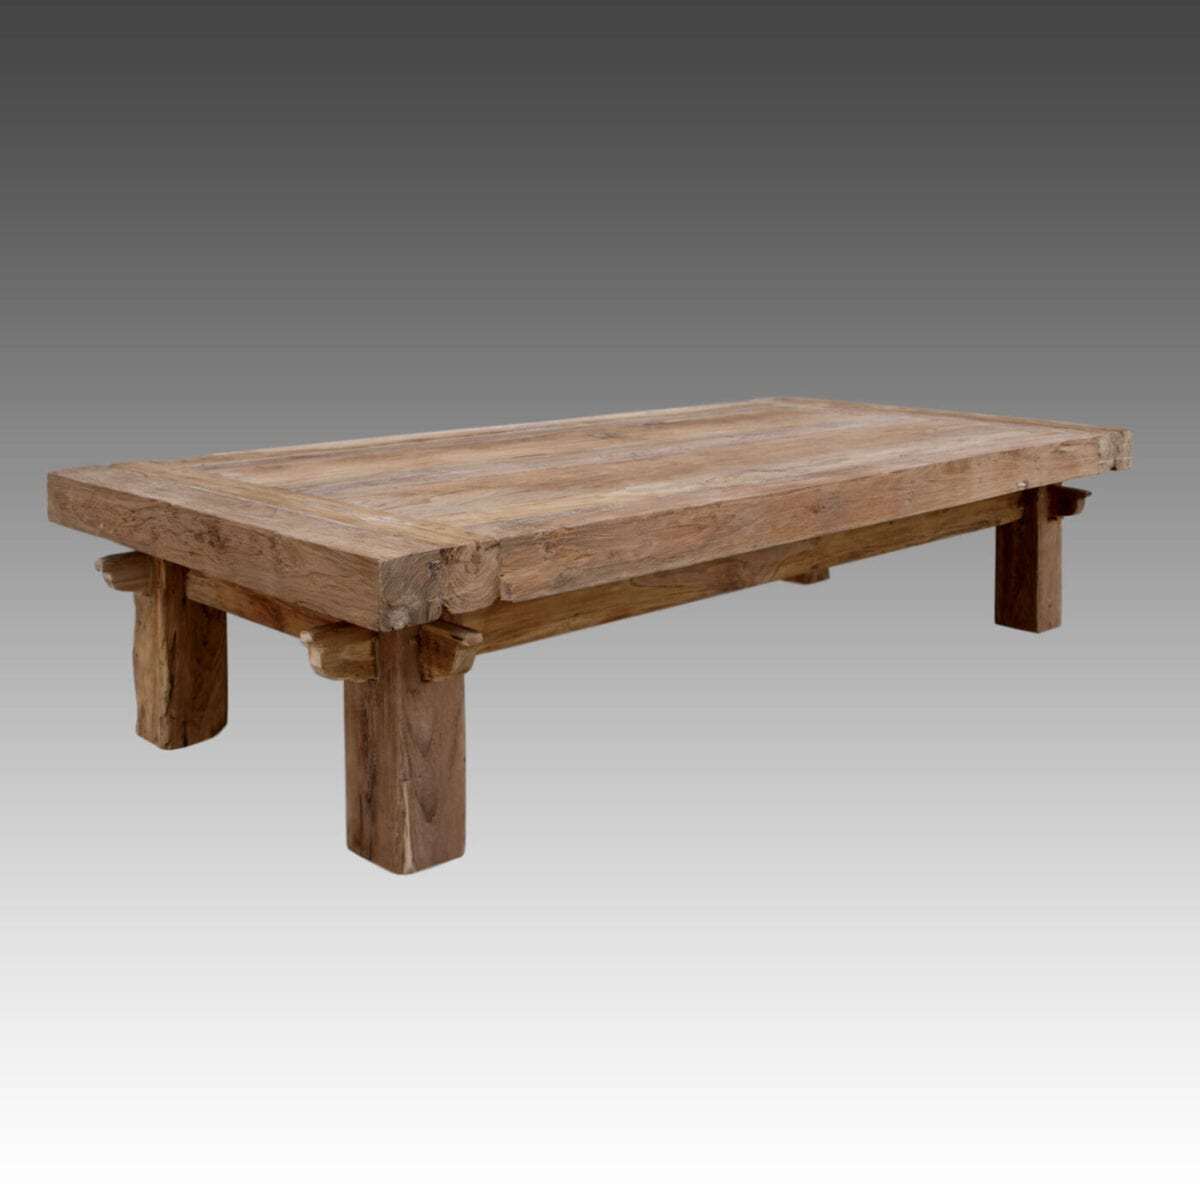 Reclaimed teak quattro rustic coffee table blubambu Coffee tables rustic